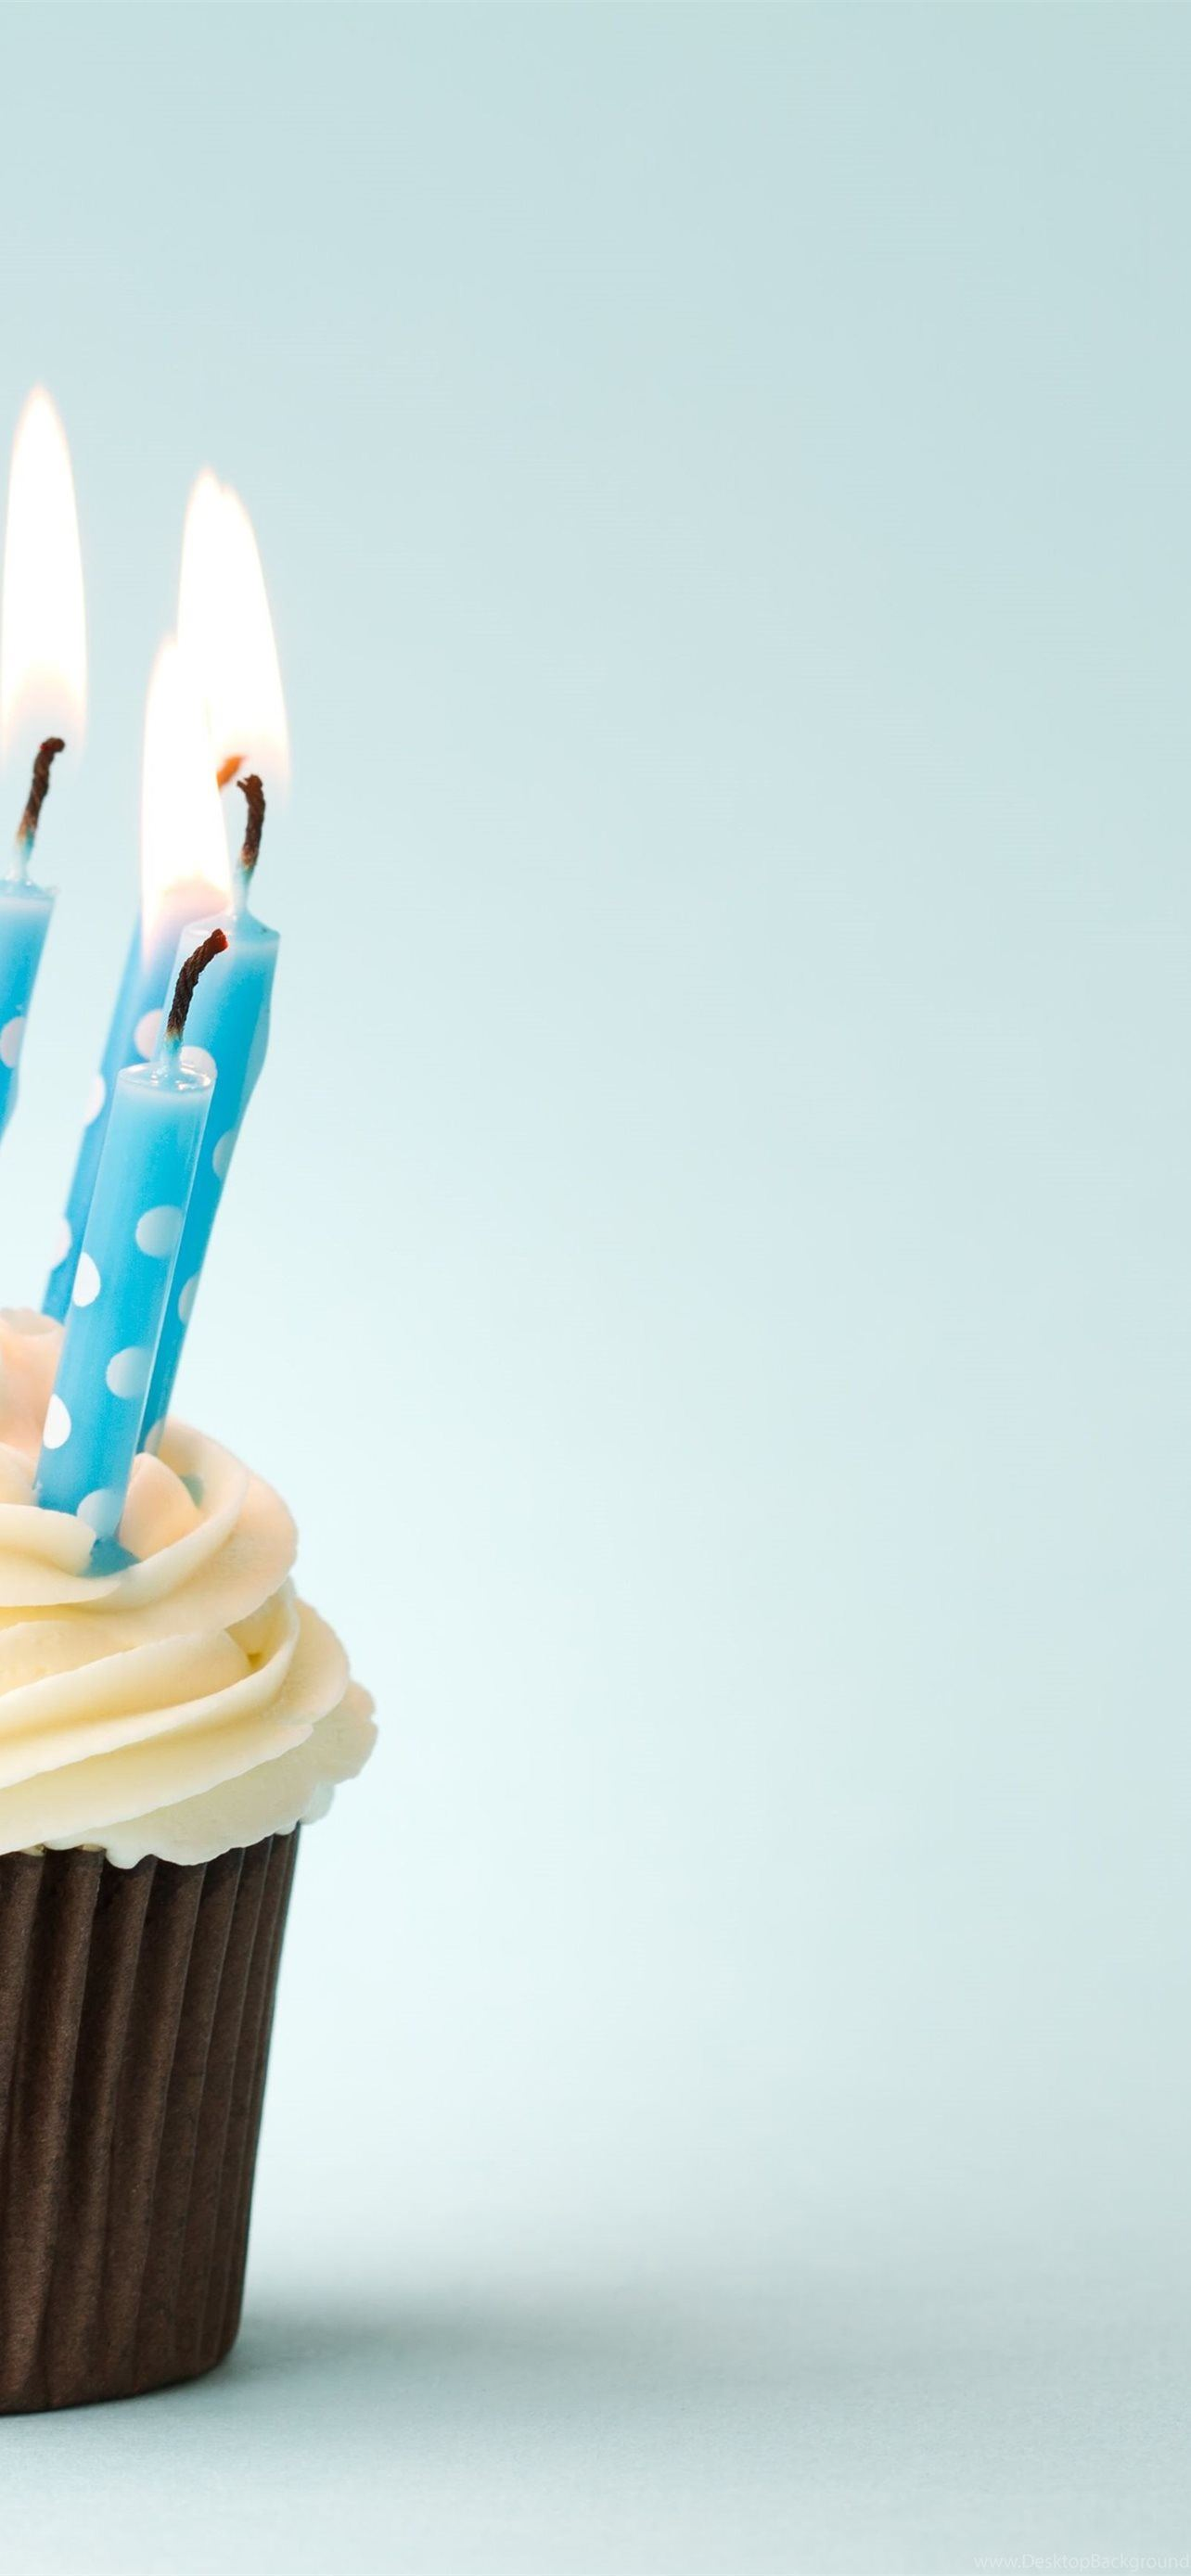 Birthday Images Backgrounds Desktop Background iPhone Wallpapers ...